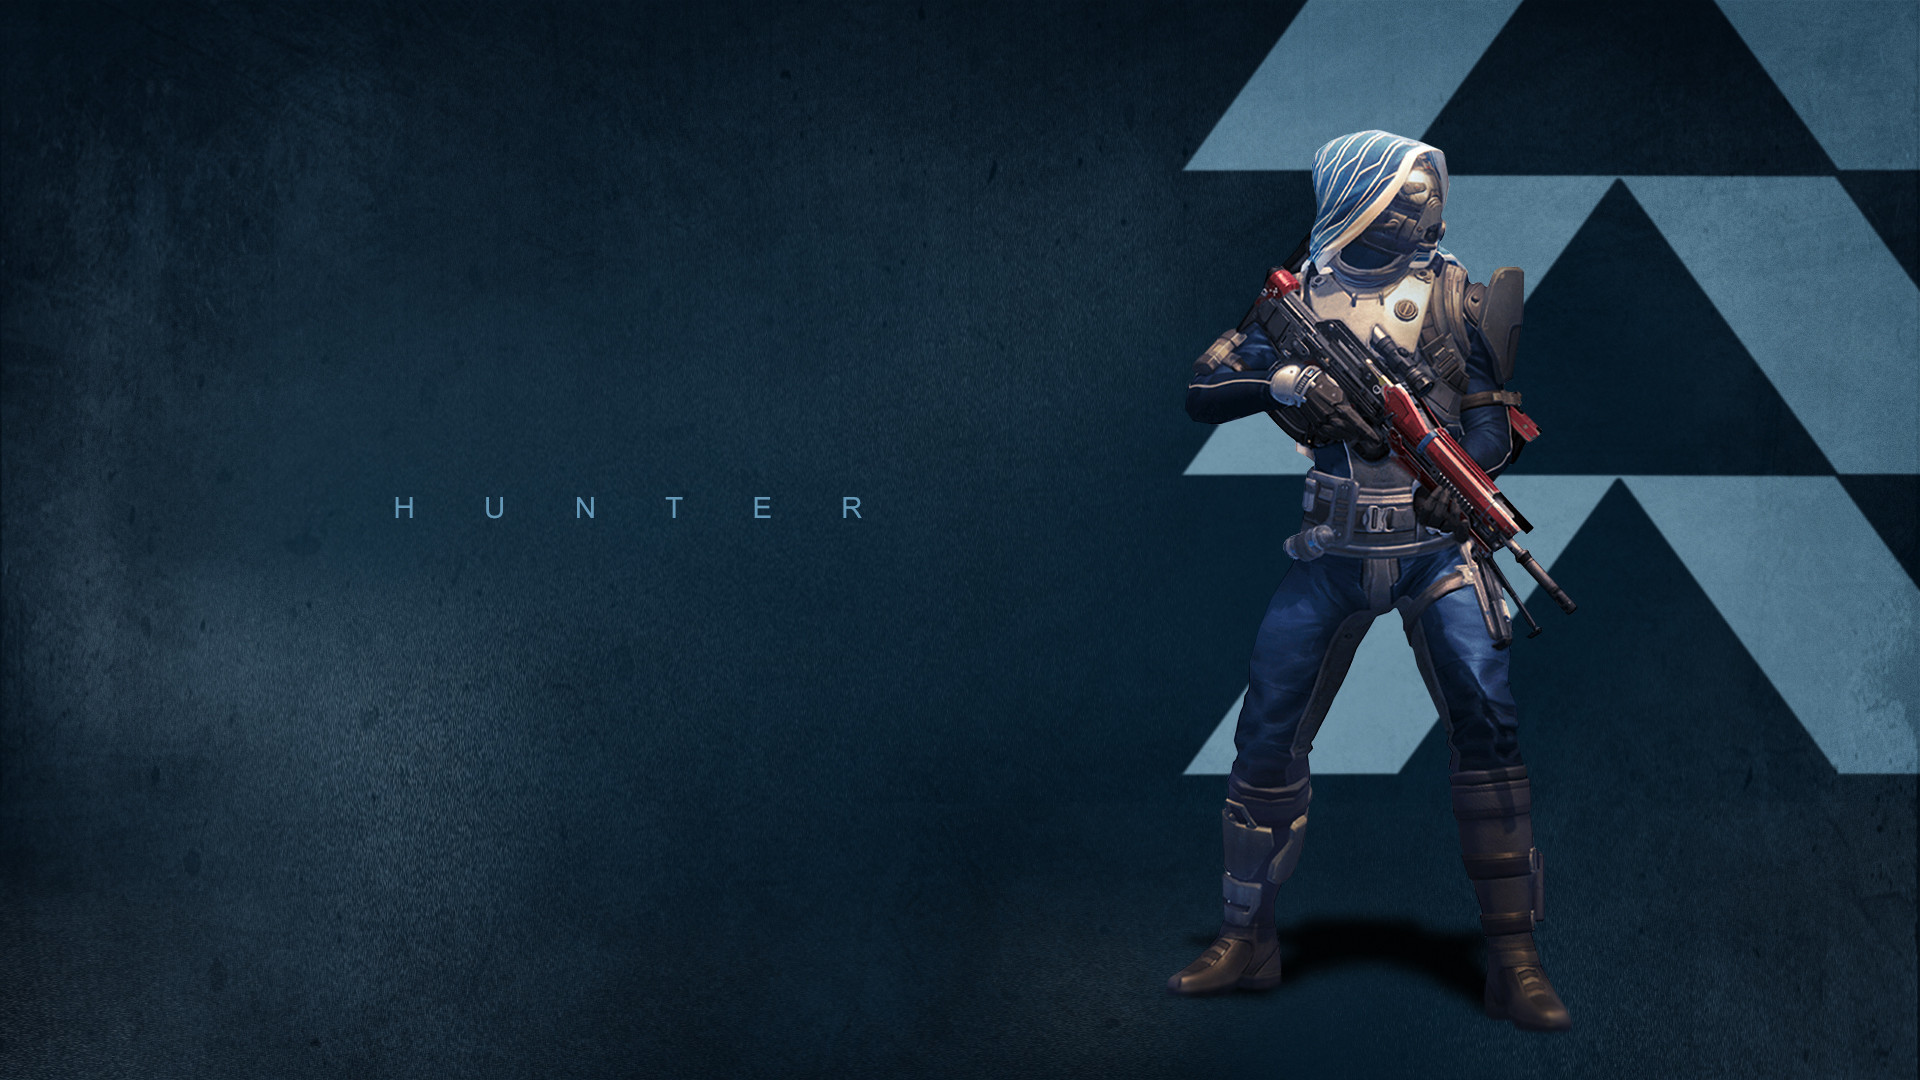 Game Destiny Wallpaper – https://www.cartoonography.com/2144-game-destiny- wallpaper.html | My Style | Pinterest | Destiny game, Gaming and Video games